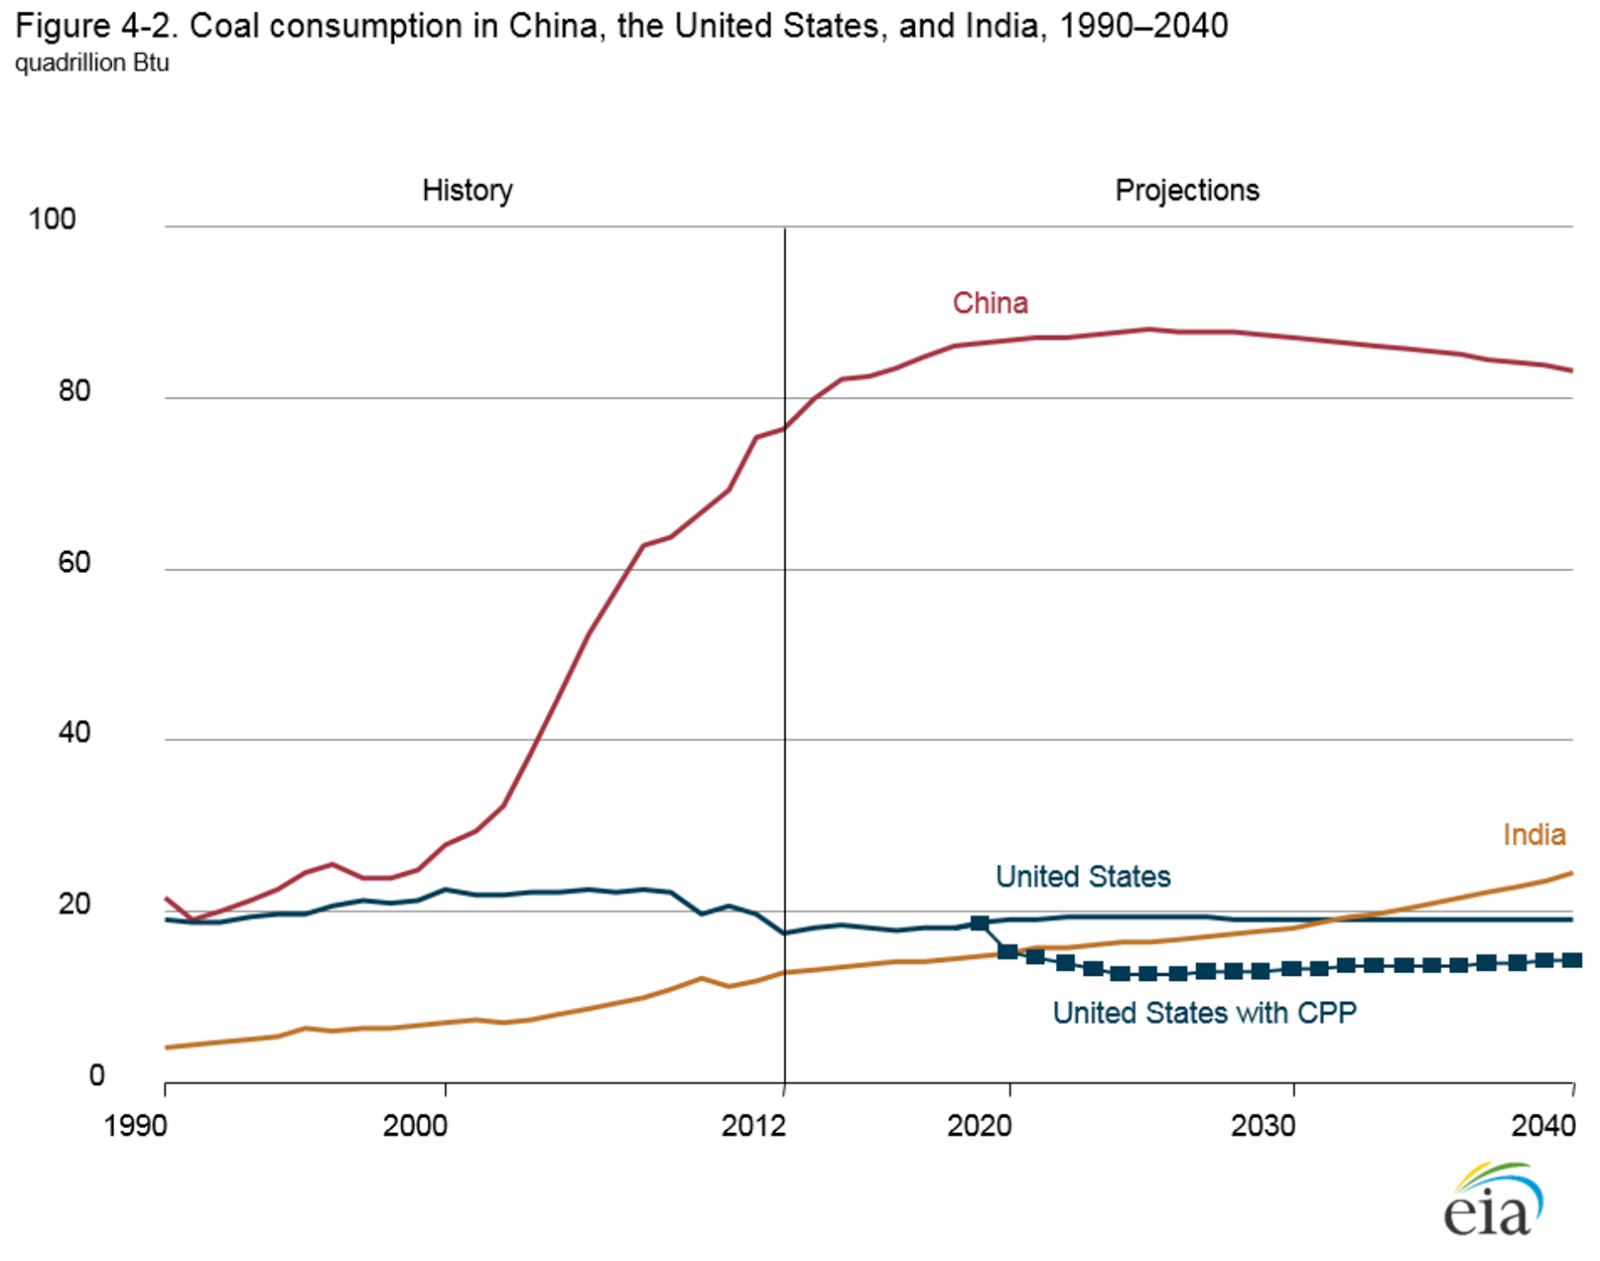 Australias economy is a house of cards matt barrie medium coal consumption in china the us and india 19902040 source us energy information administration ccuart Gallery